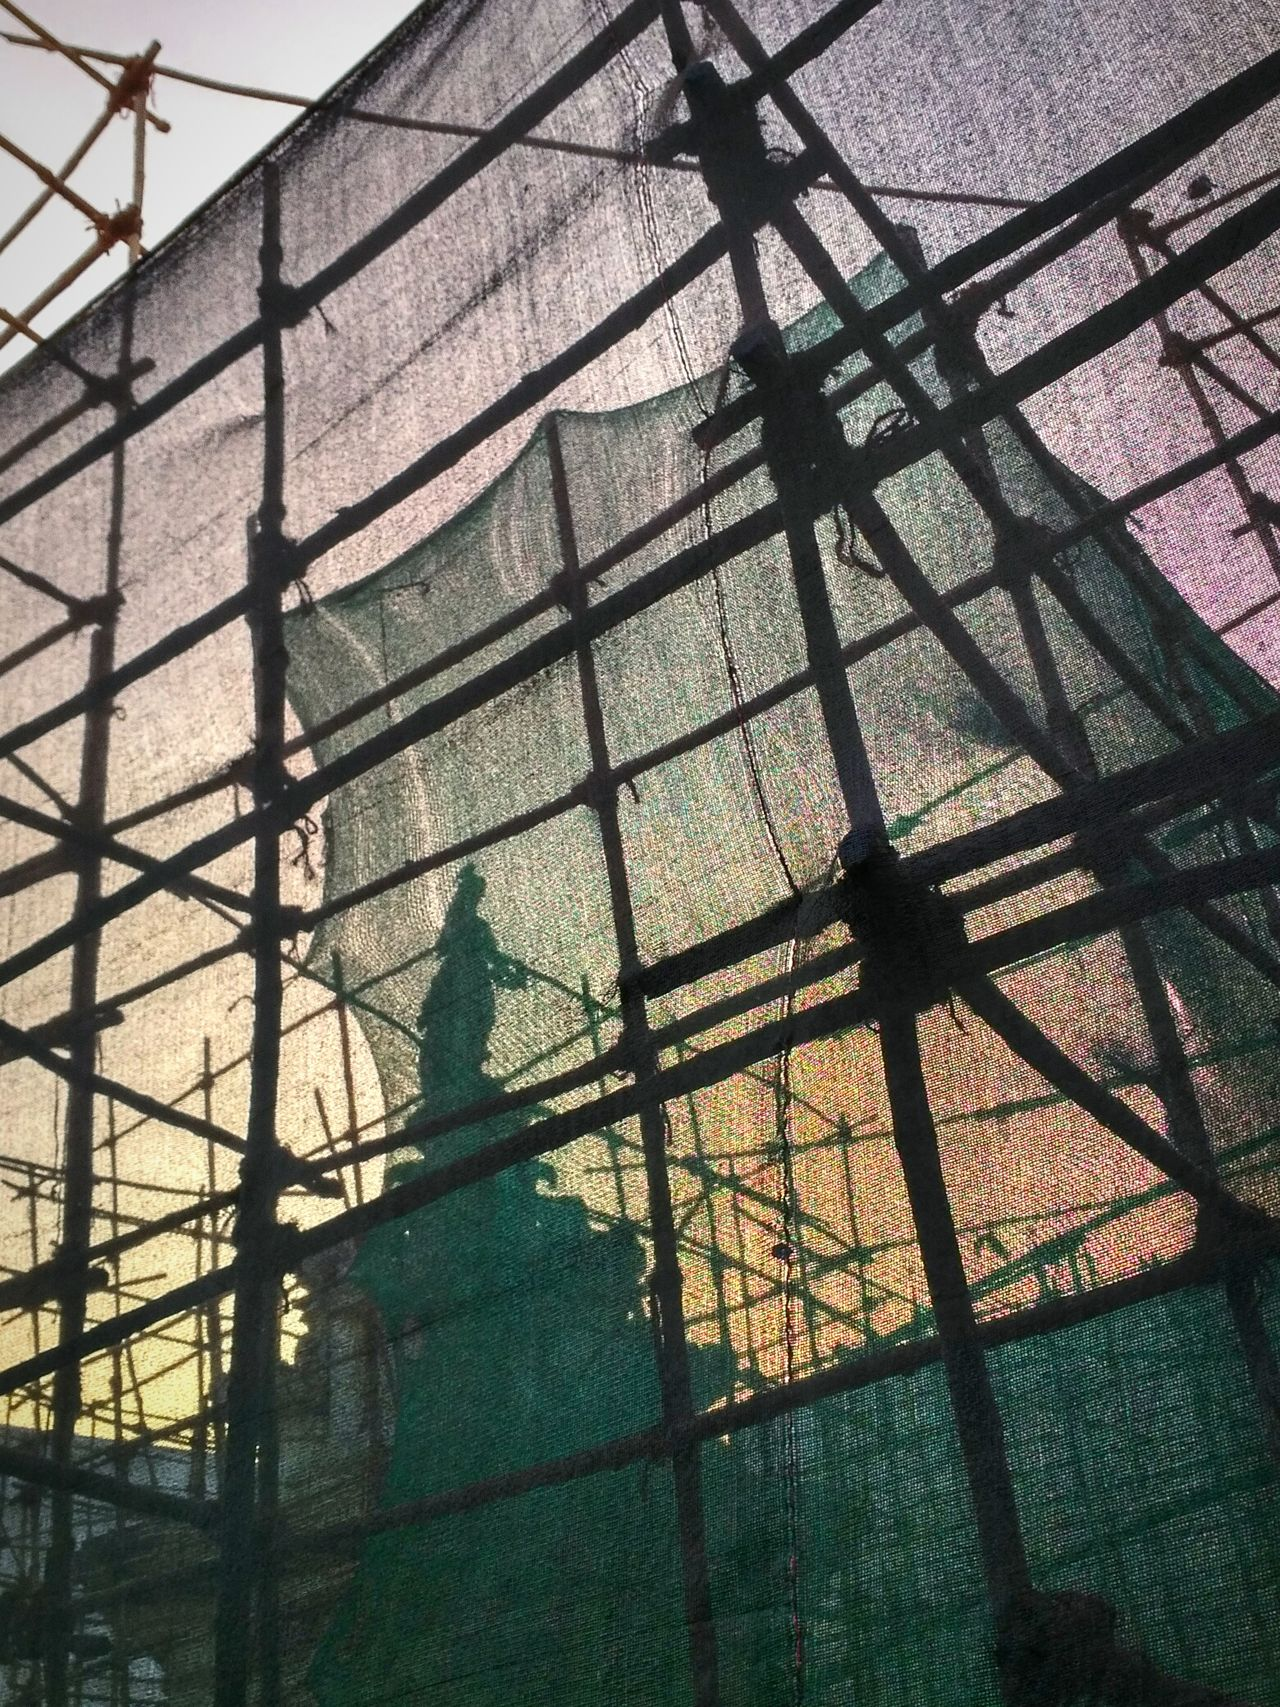 Low Angle View Sky Netting Built Structure Architecture MumbaiDiaries Travel Dairies Mumbai Sculpture City Outdoor Photography Orange Sky No People